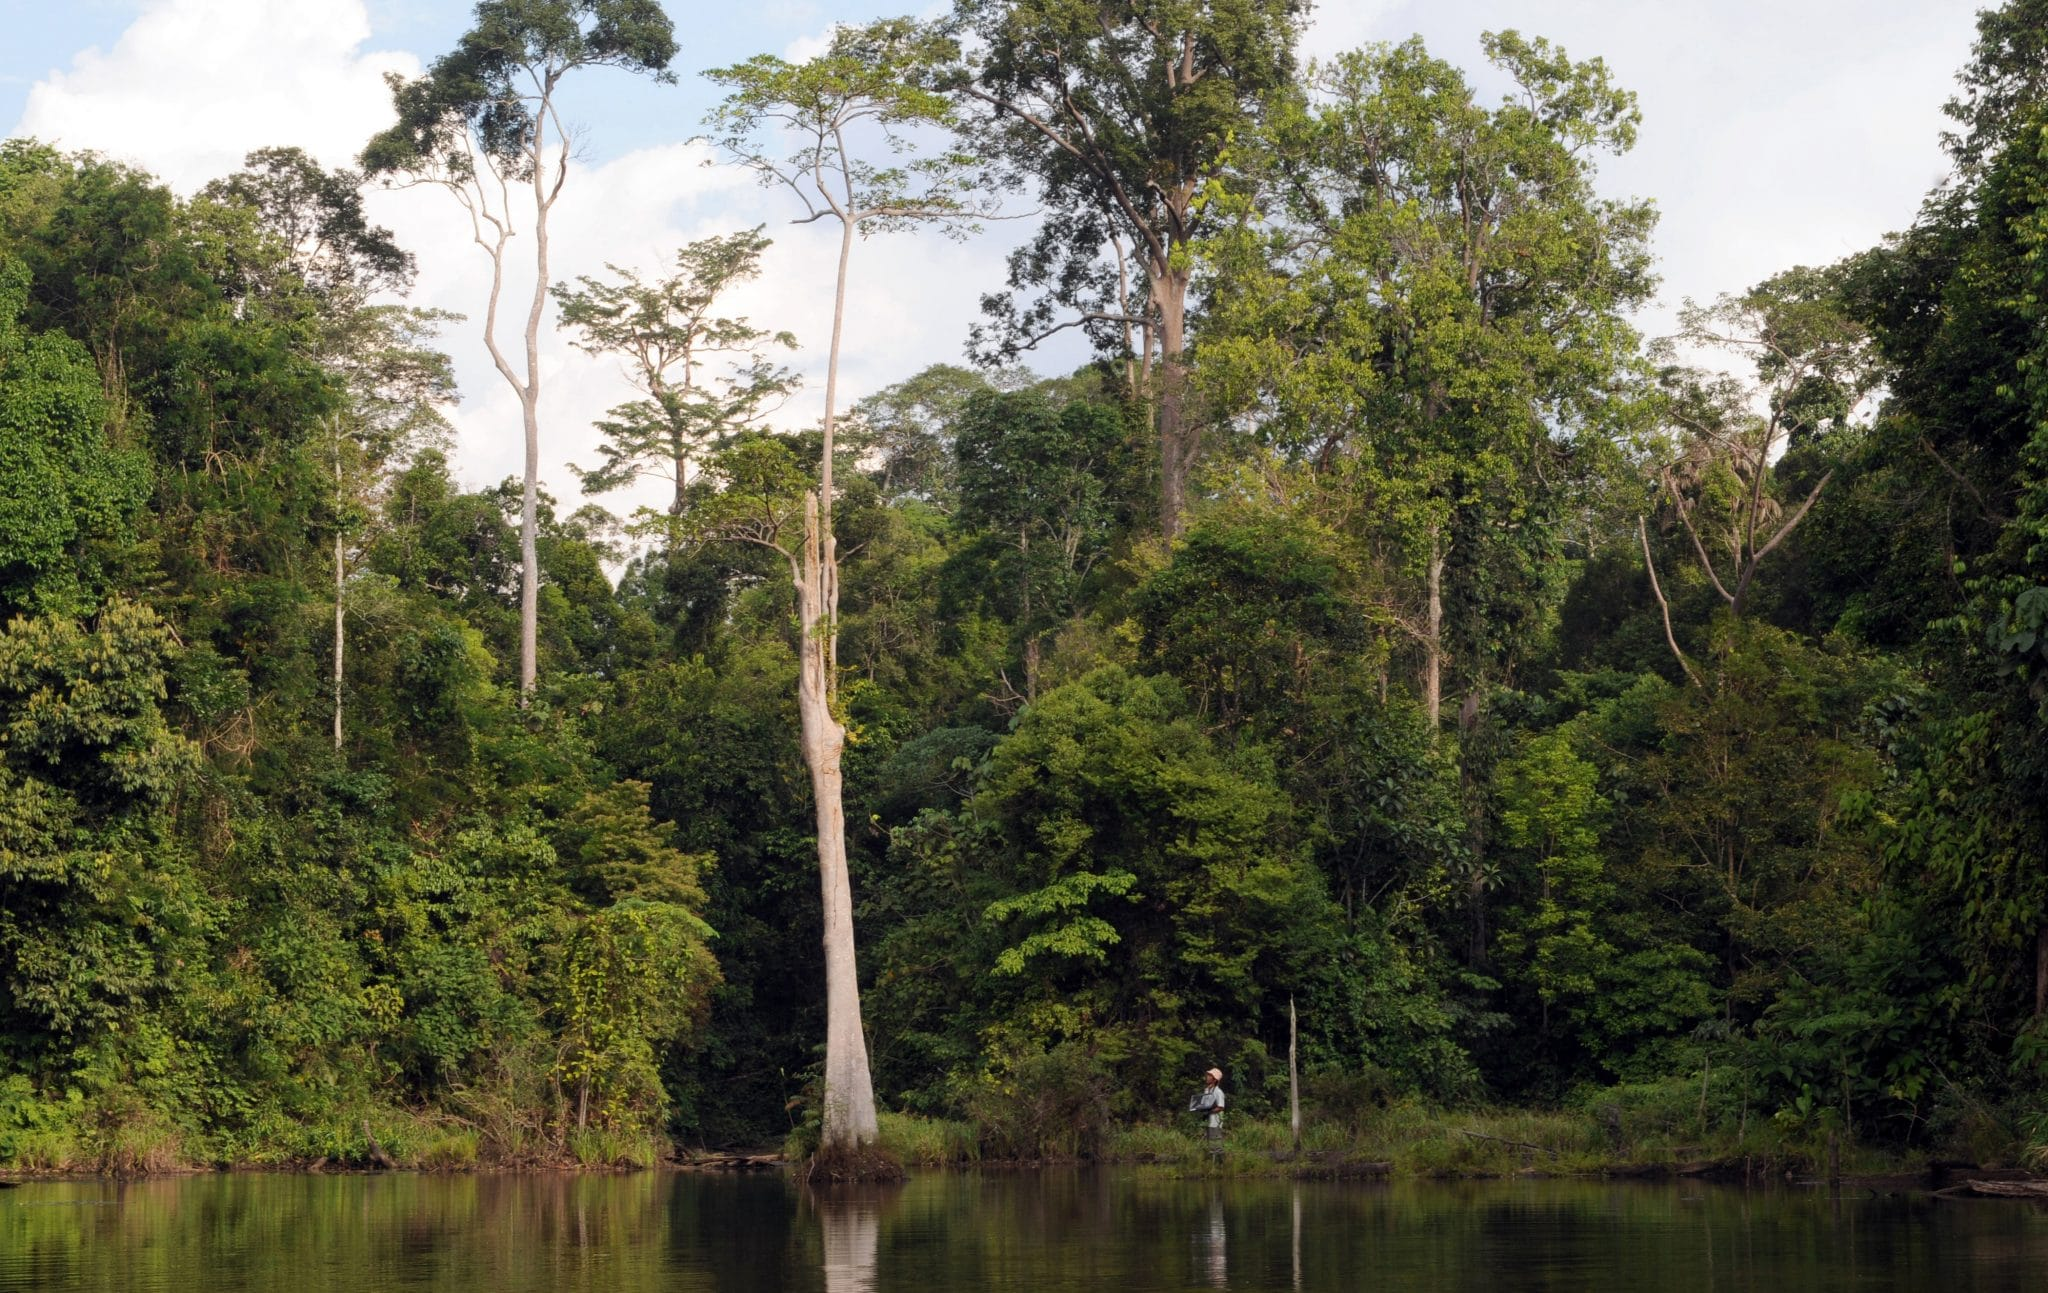 harapan rainforest, Harapan Rainforest: Must-Know Information and Guide, Phenomenal Place